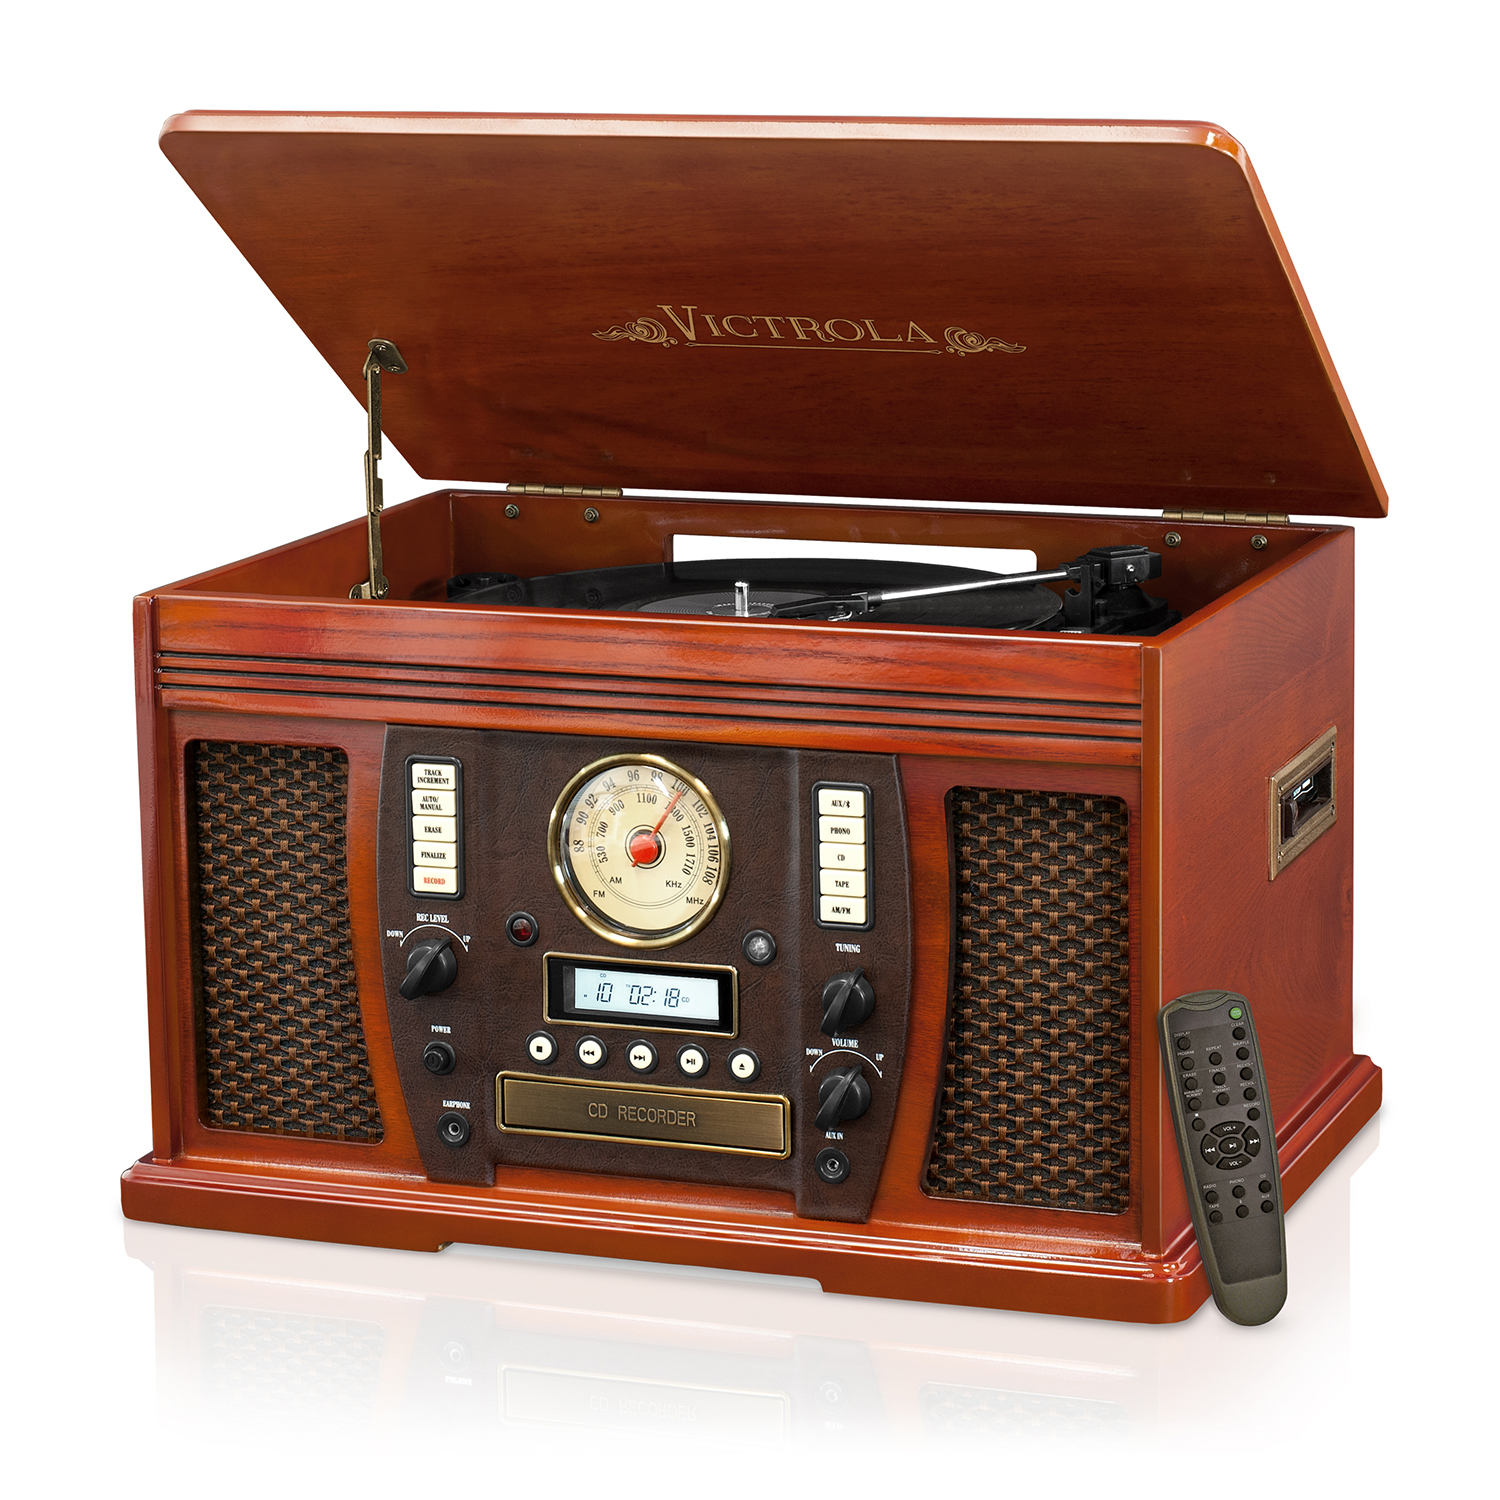 Victrola Wood 7-in-1 Nostalgic Bluetooth Record Player with CD Encoding and 3-speed Turntable Piano Finish